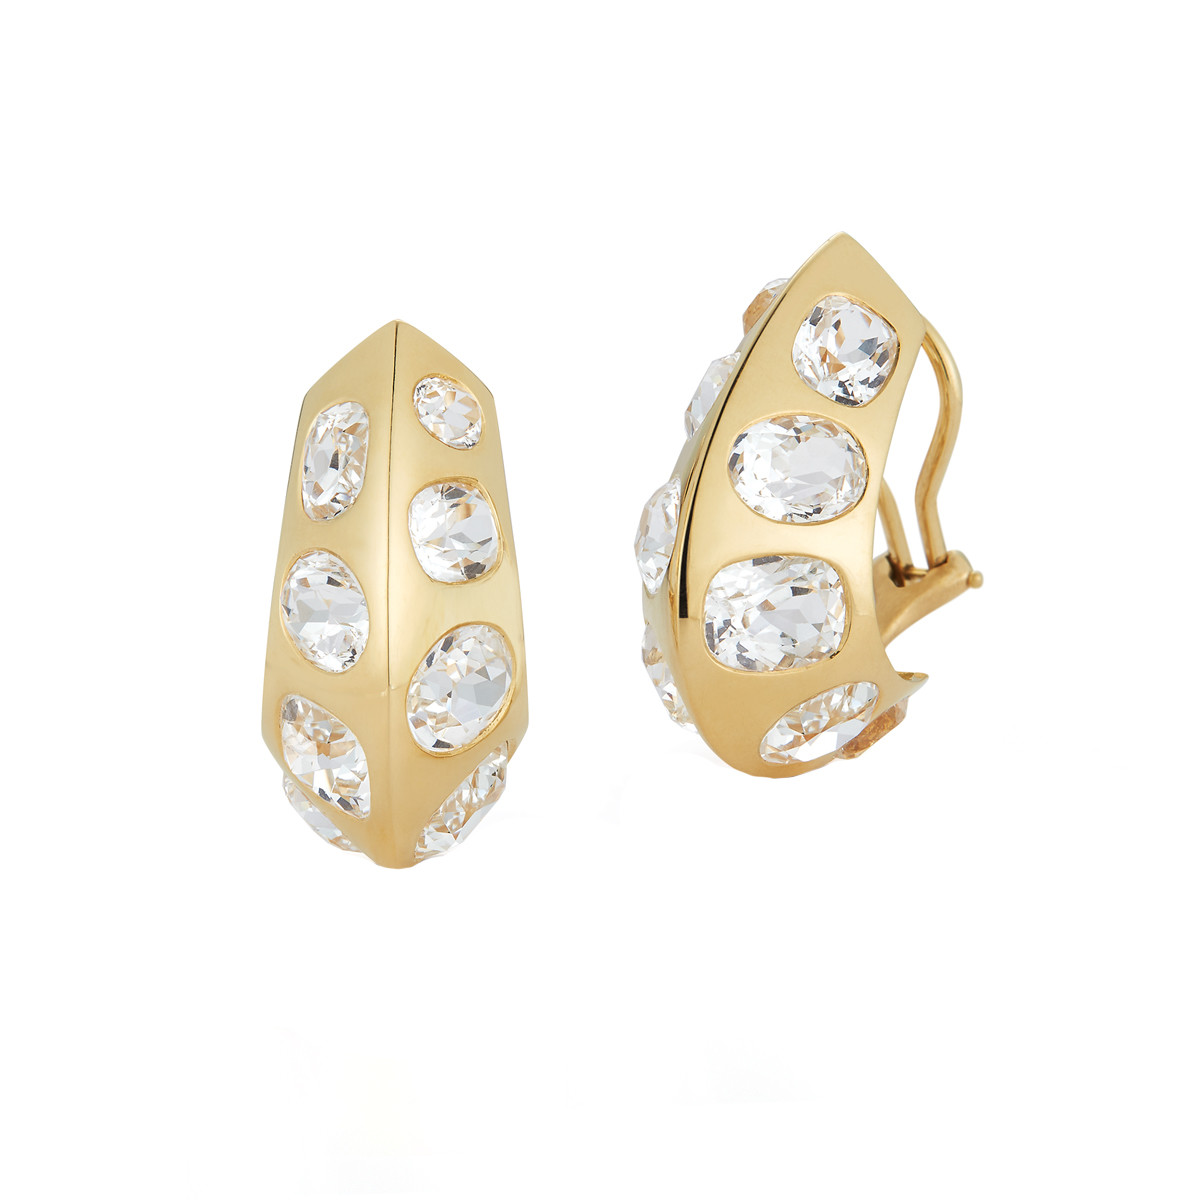 "18k Yellow Gold & White Topaz ""Antibes"" Earrings"